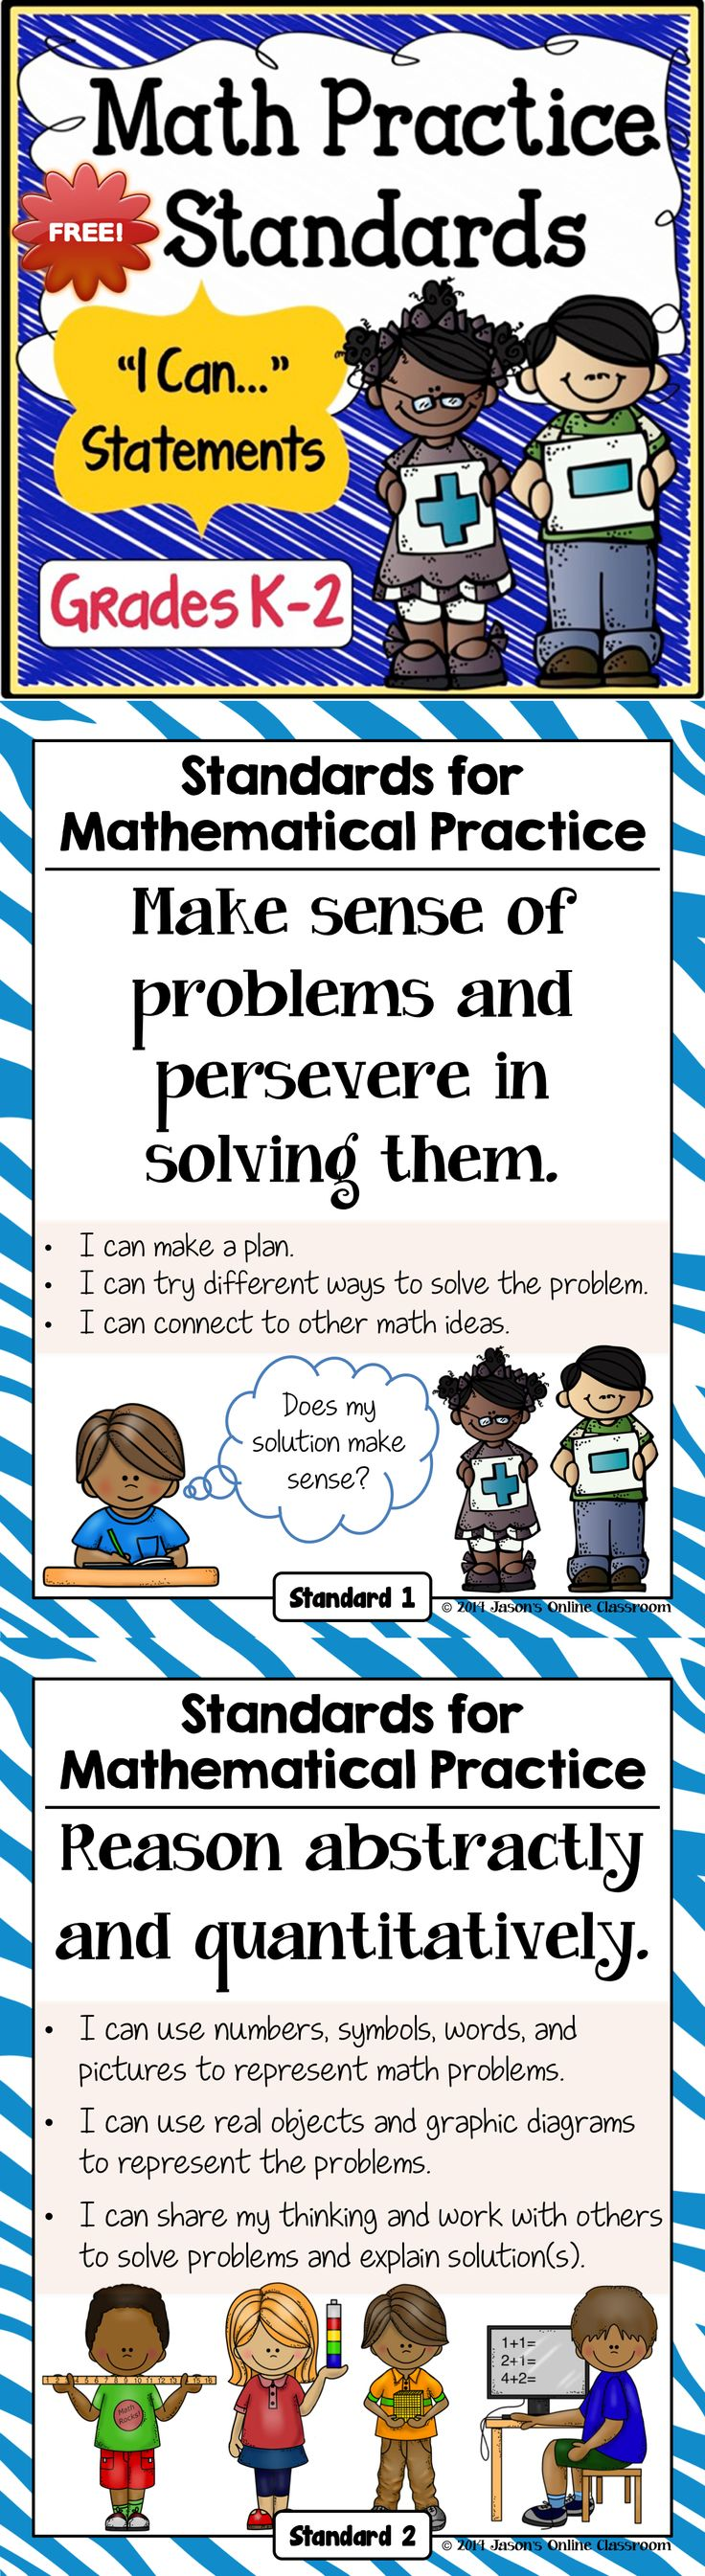 FREEBIE - Math Practice Standards for Grades K-2